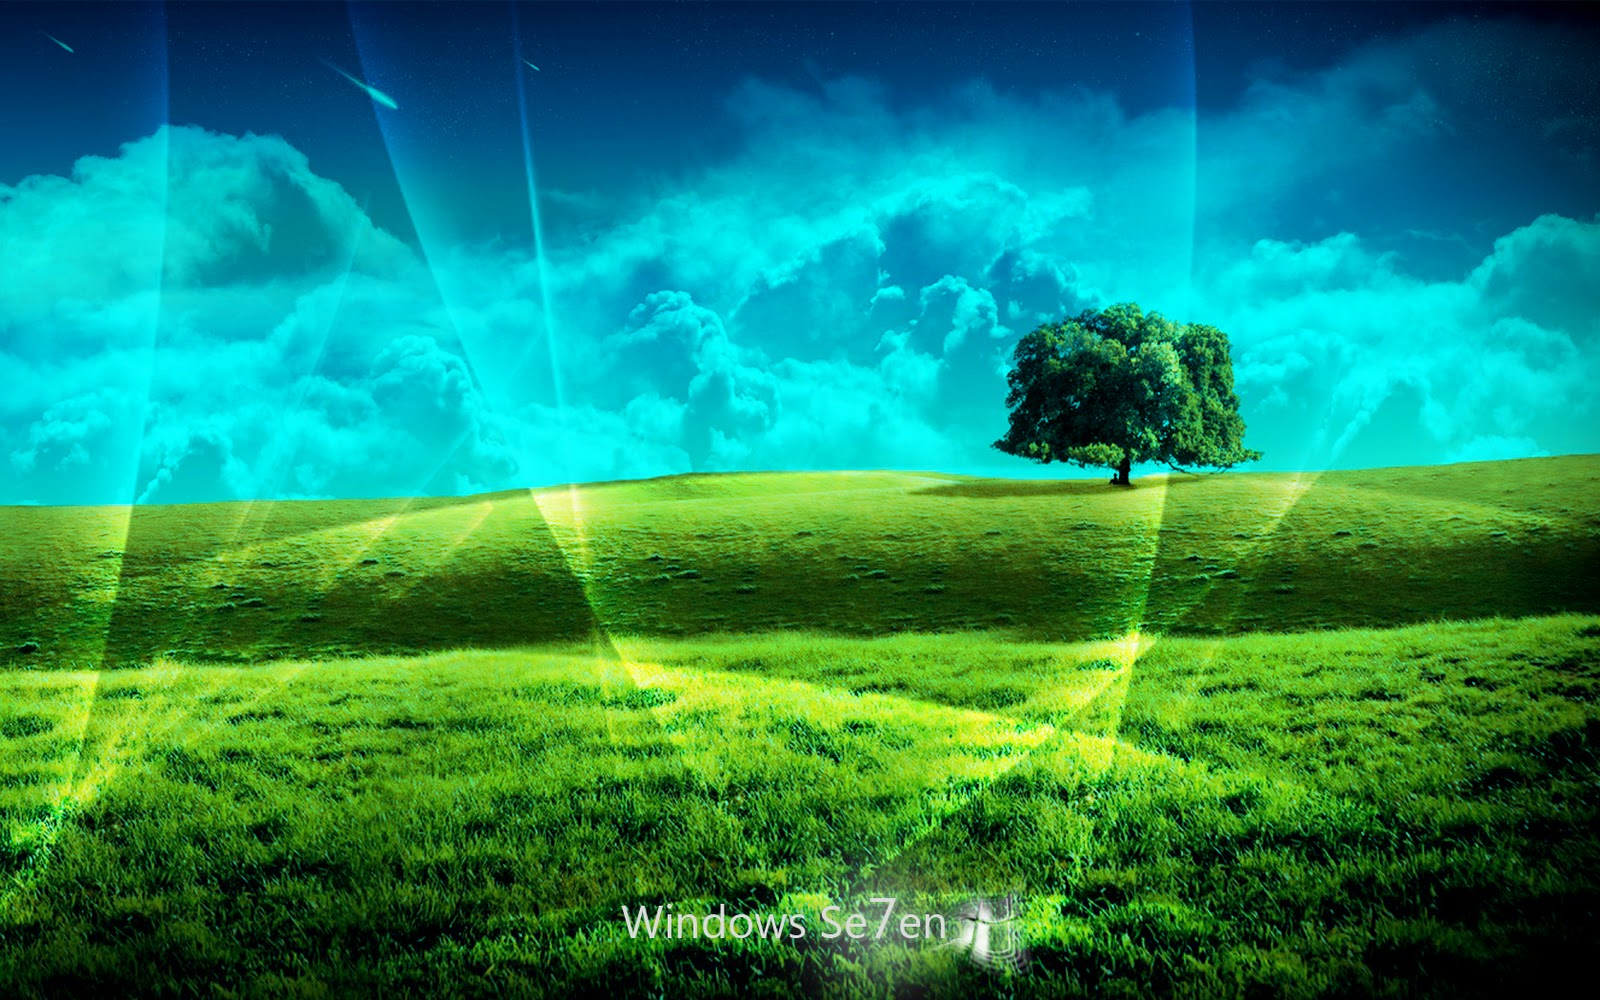 50+] Animated Wallpapers for Windows 7